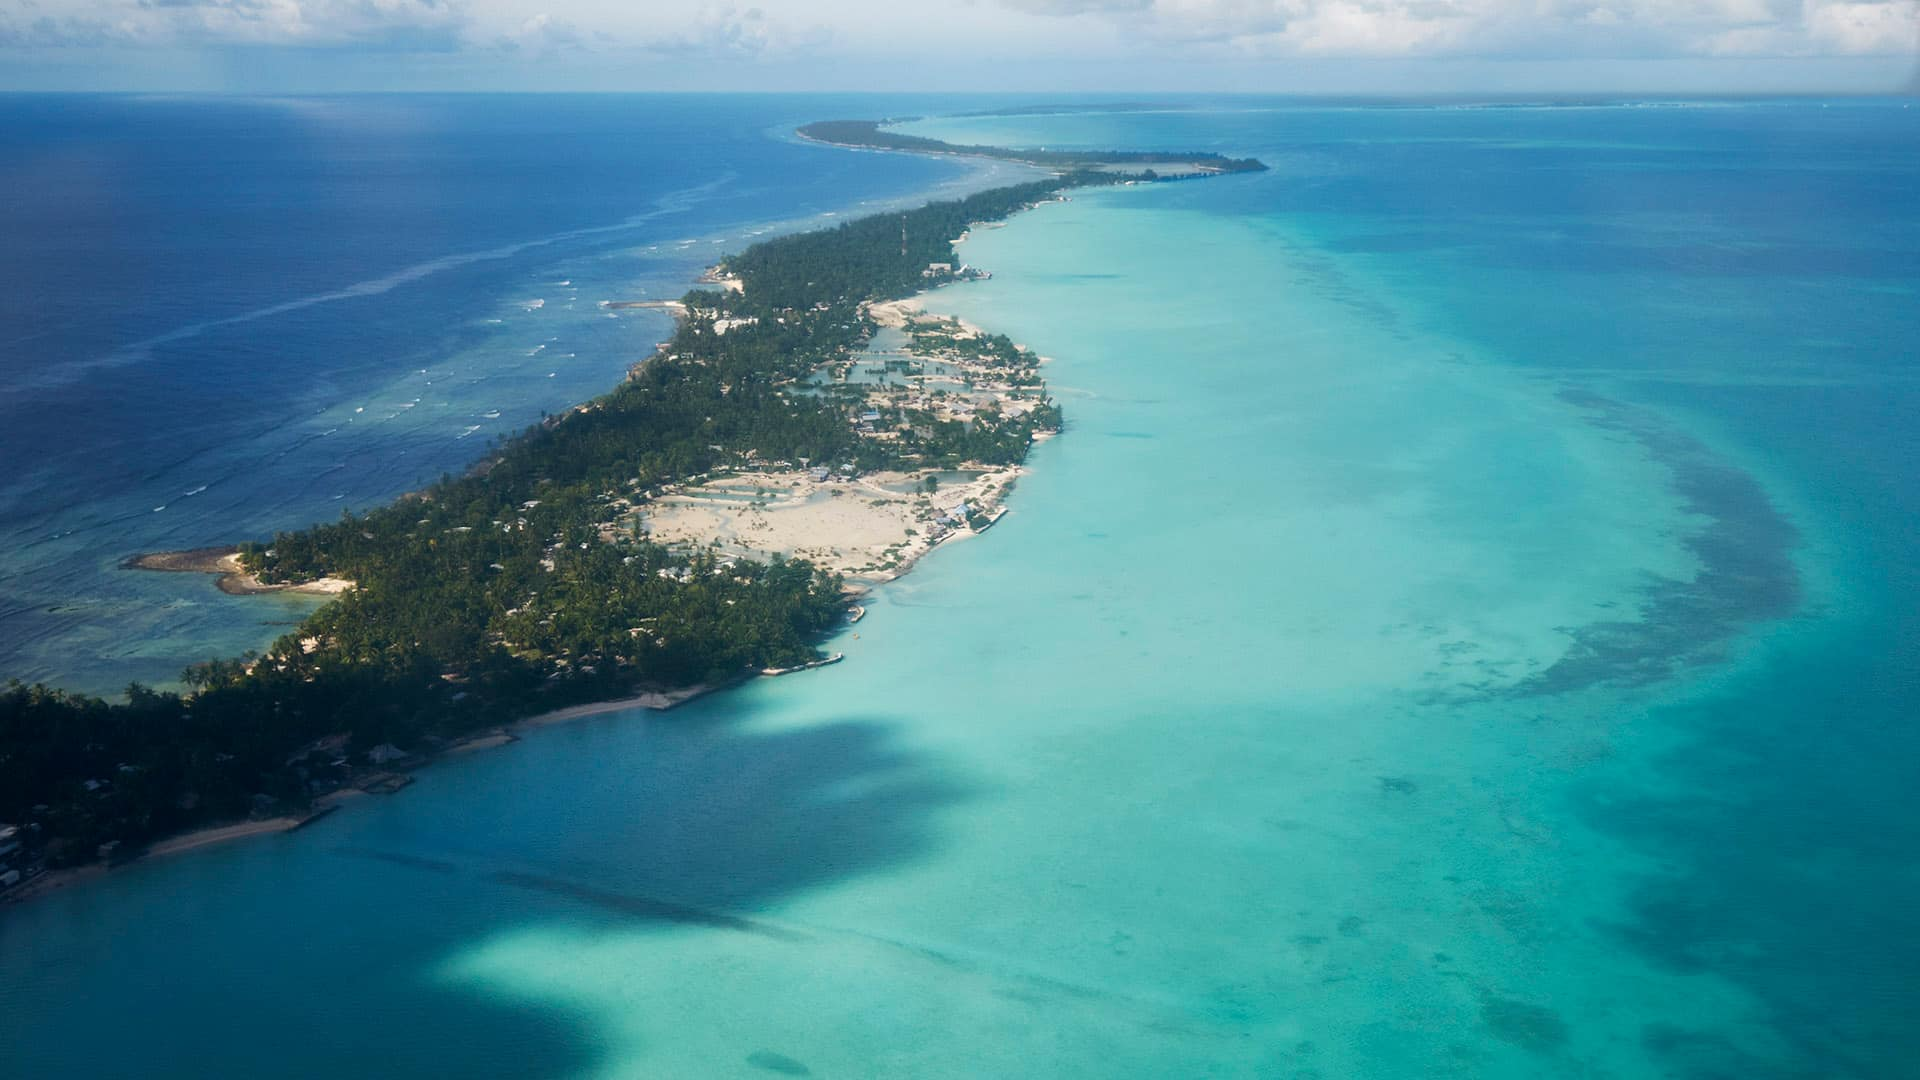 A canary in the climate change coal mine: the island nation of Kiribati is disappearing into the sea